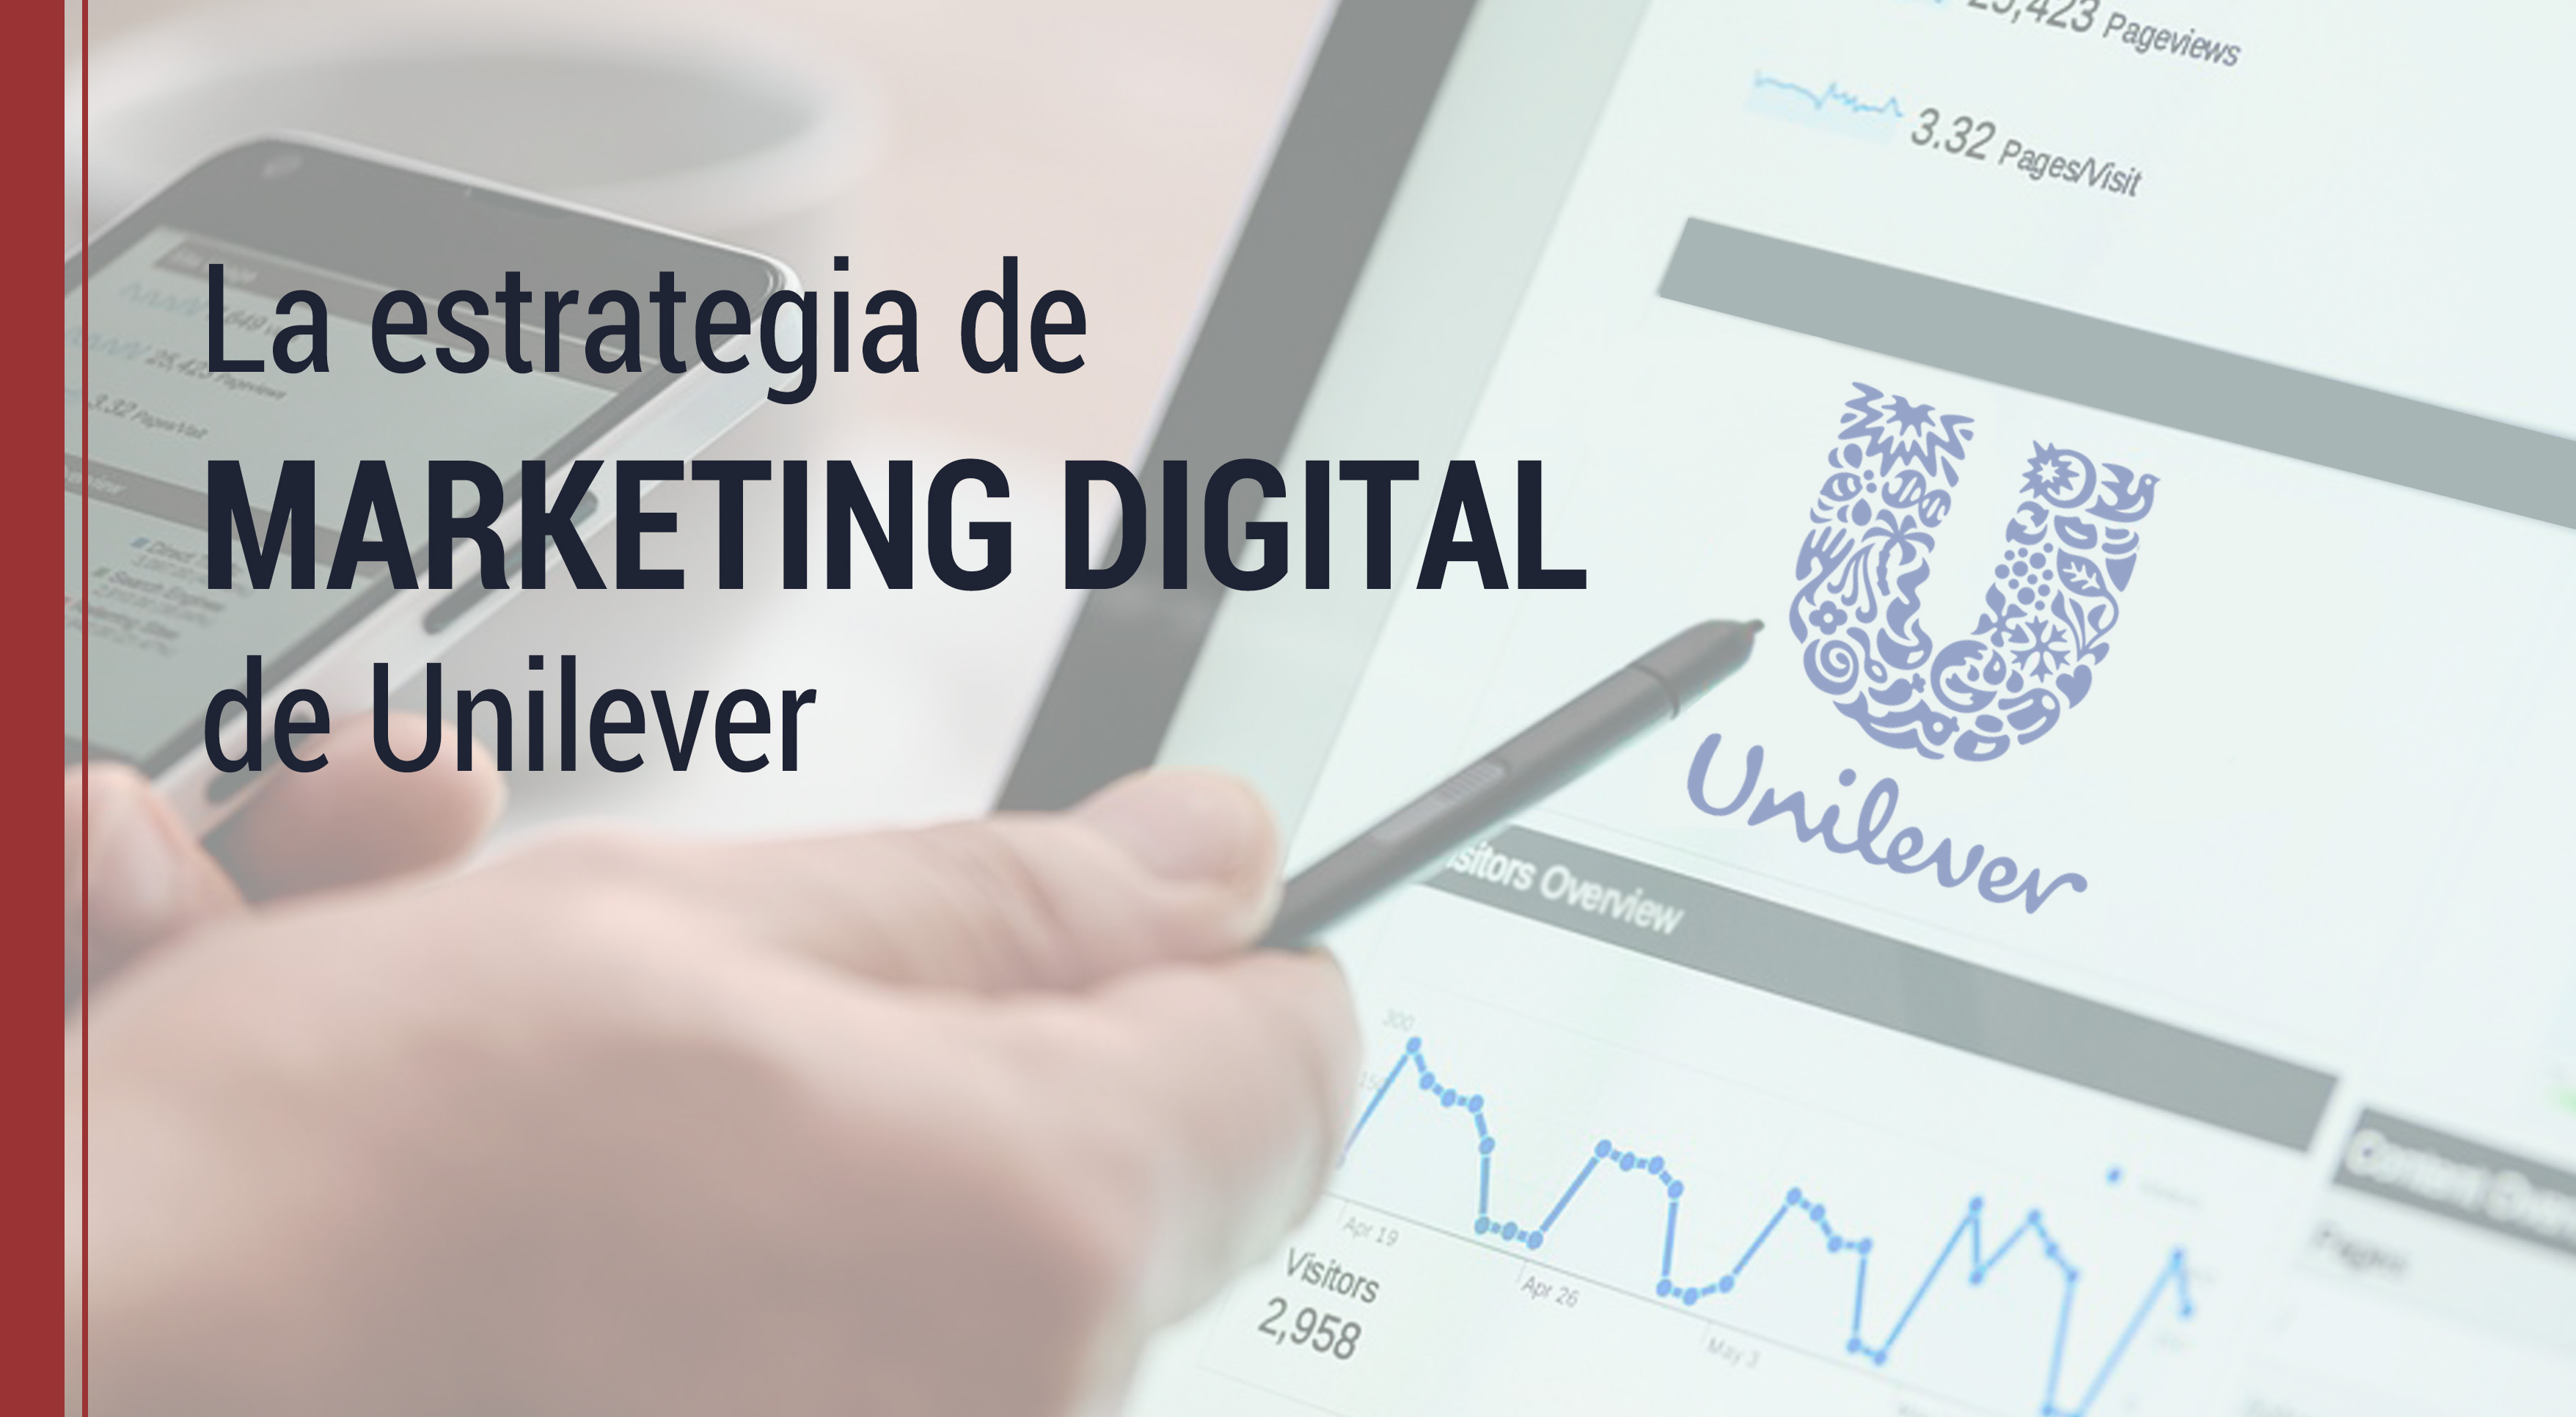 la estrategia de marketing digital de unilever